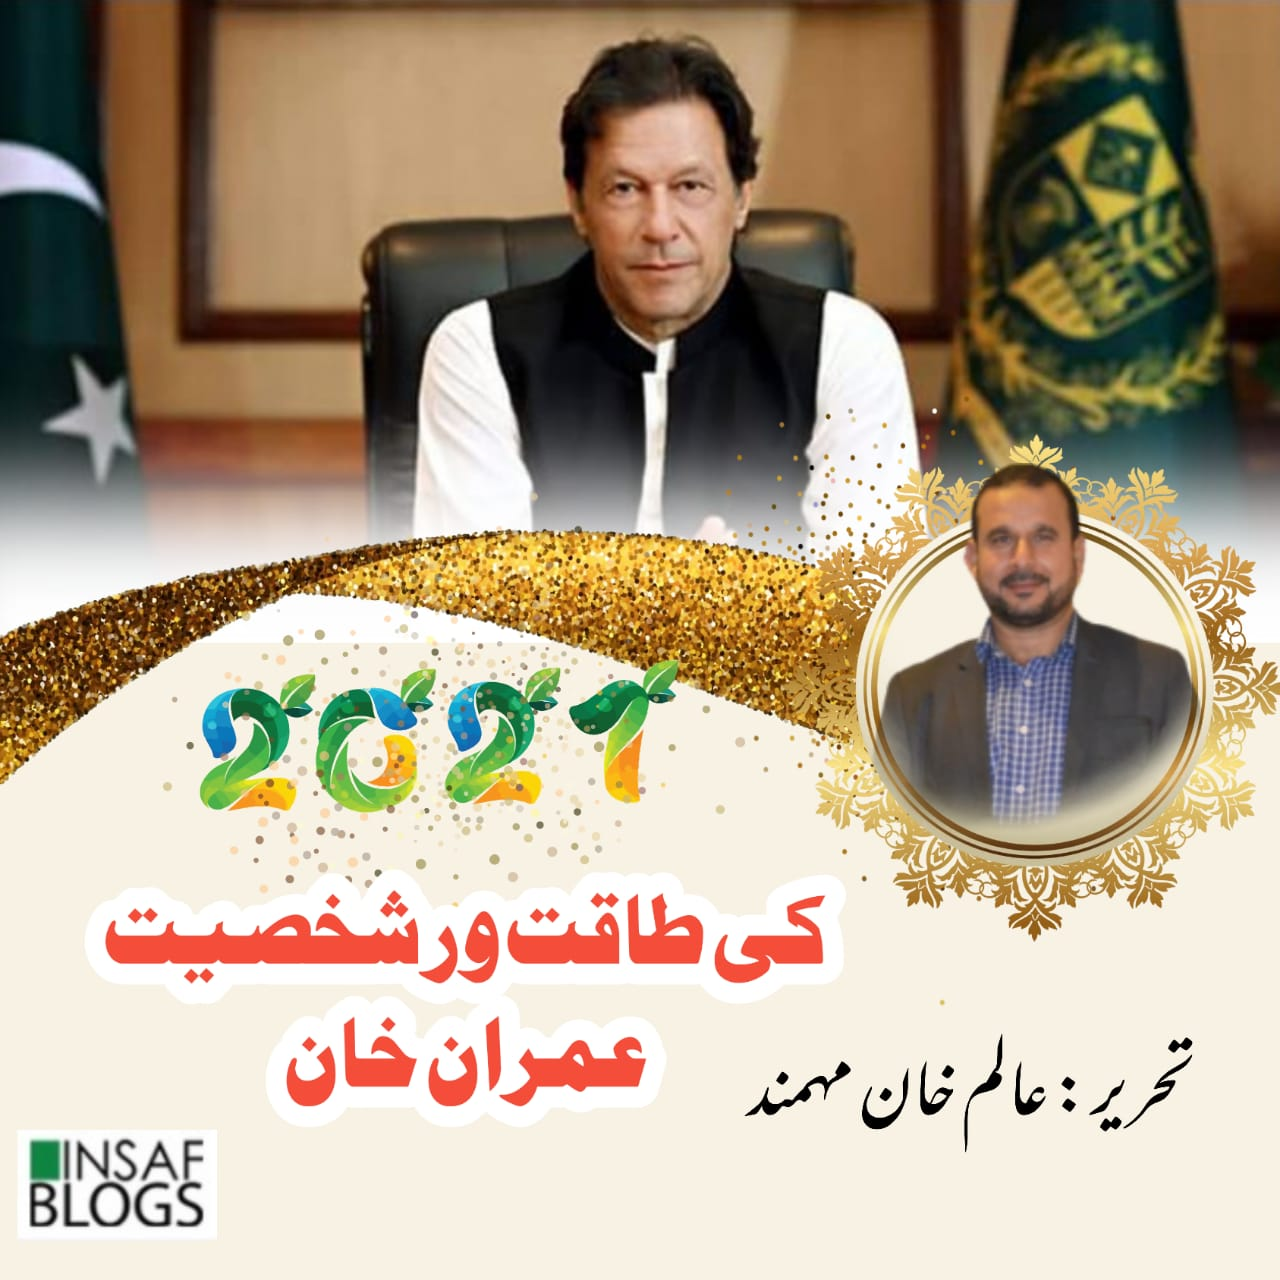 The Personality of 2021 - Insaf Blog